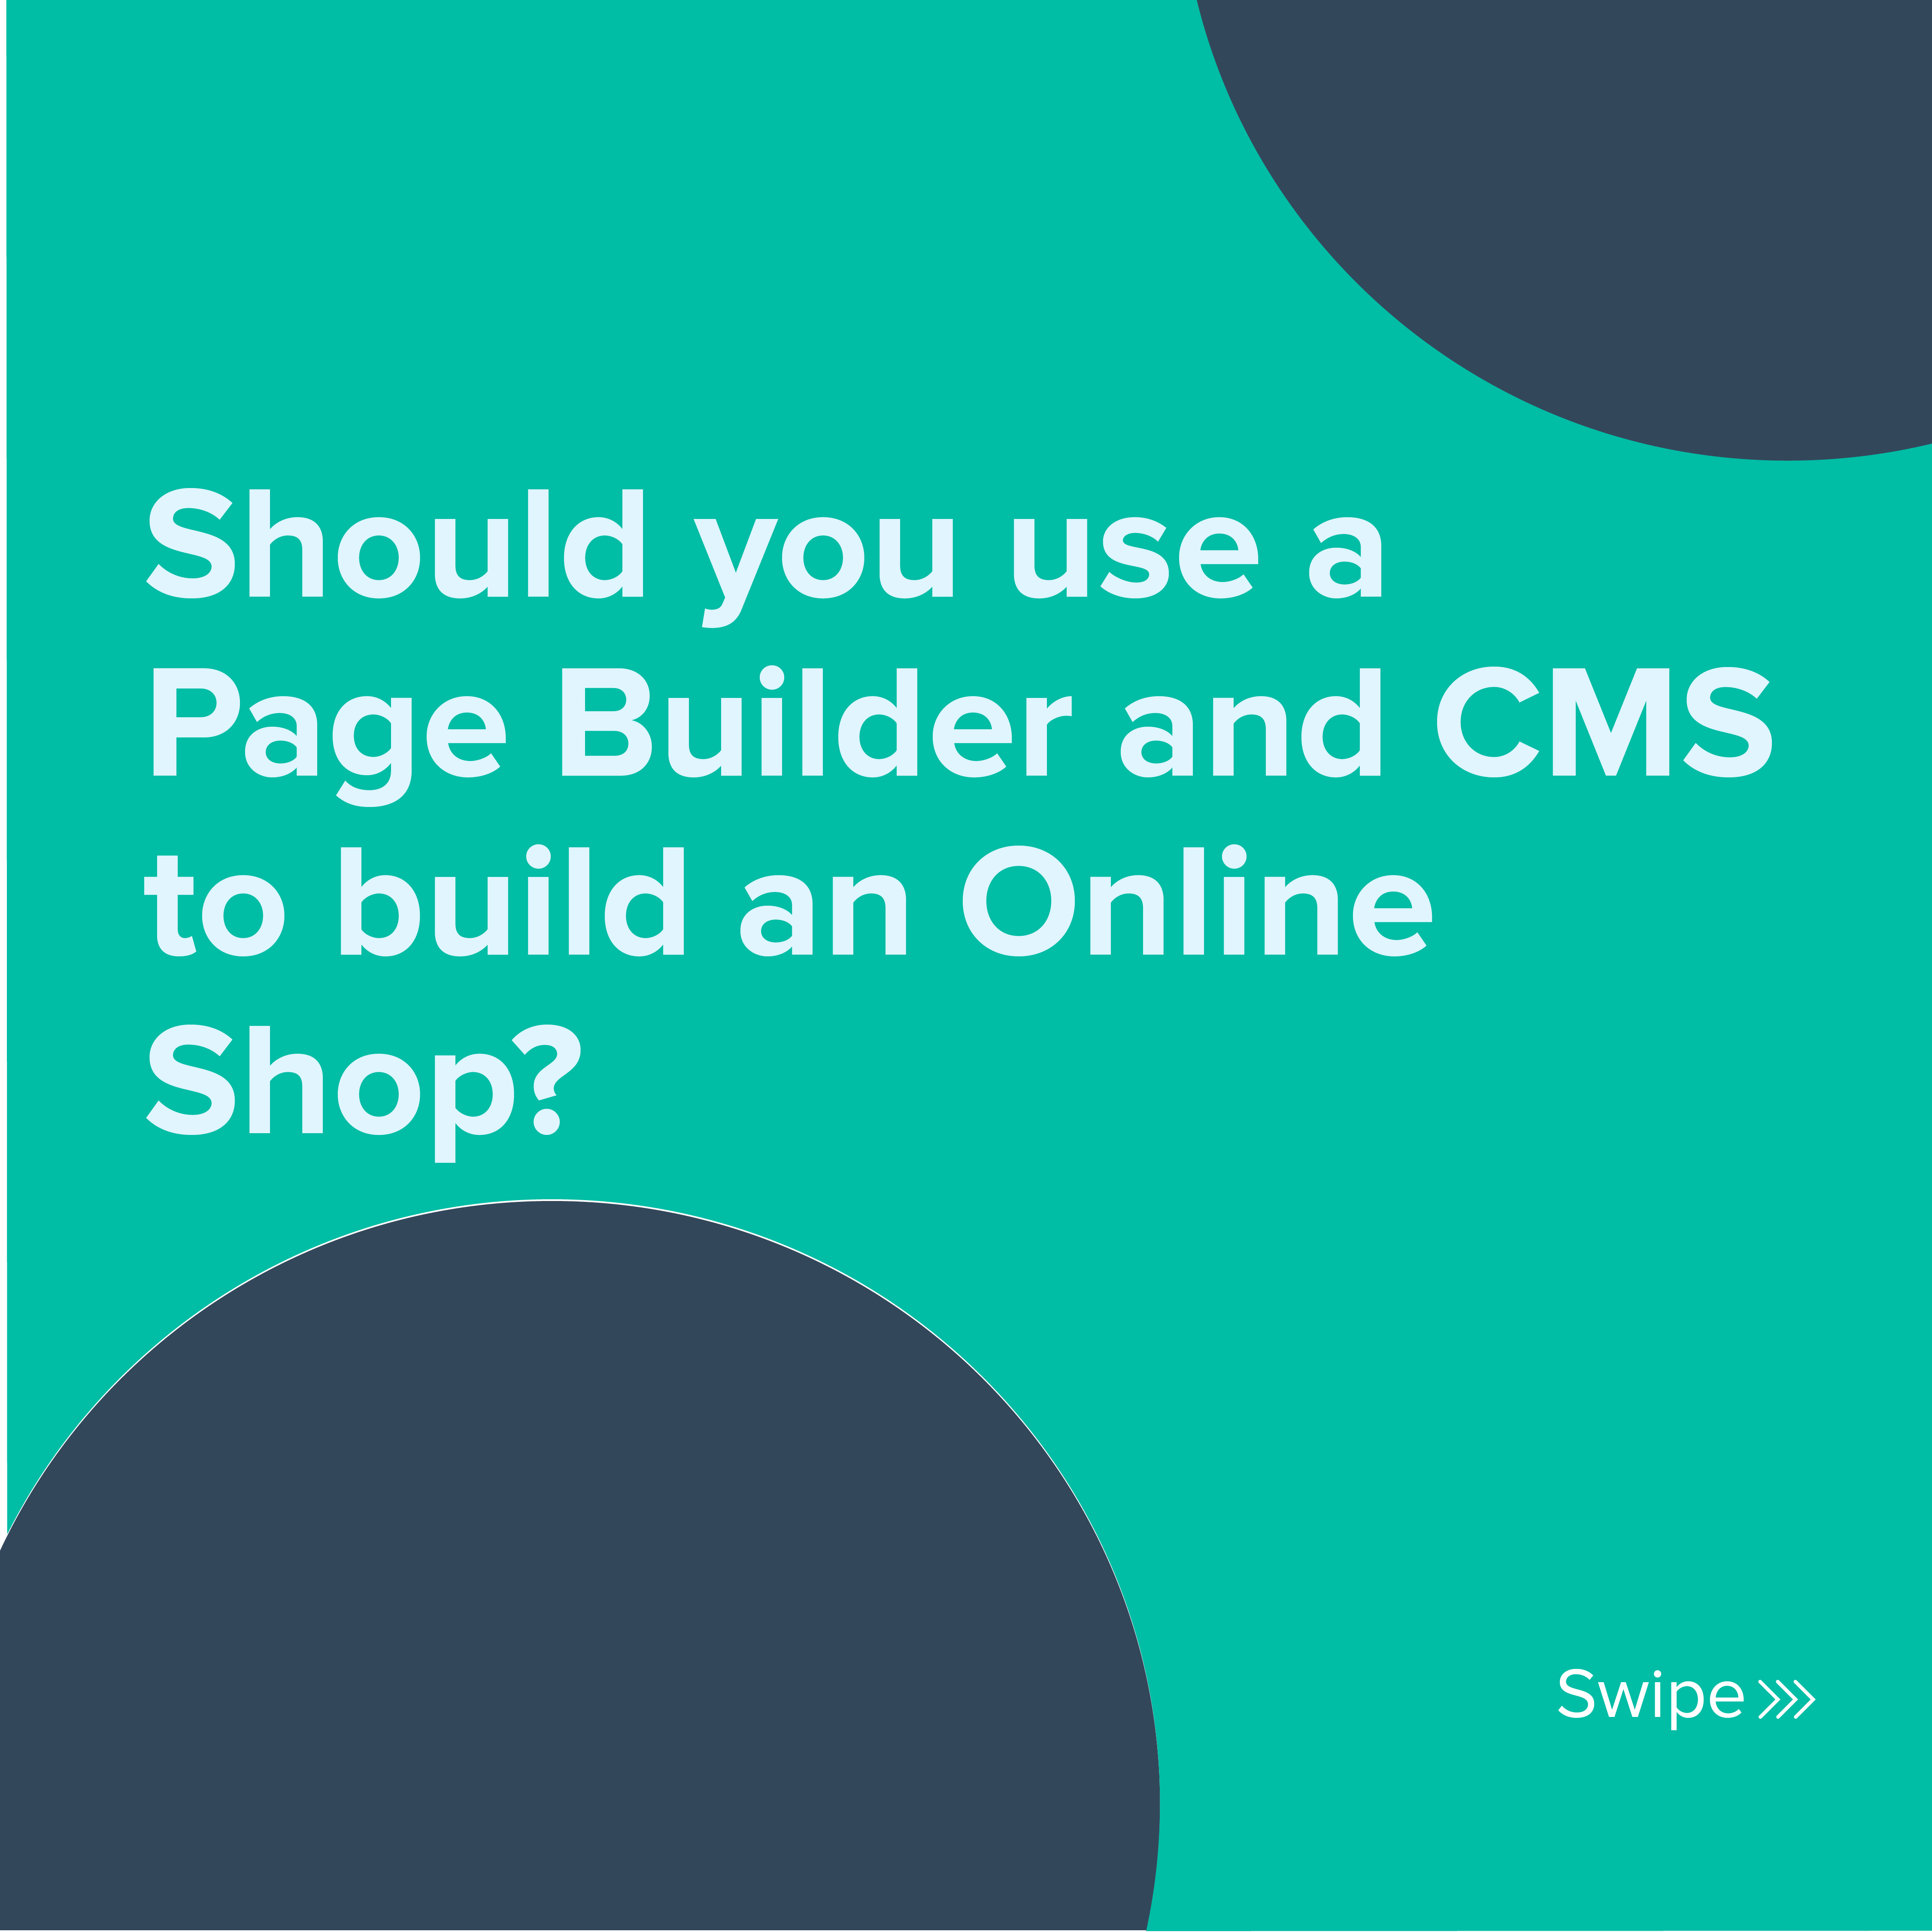 should-you-use-a-page-builder-and-cms-to-build-online-shop